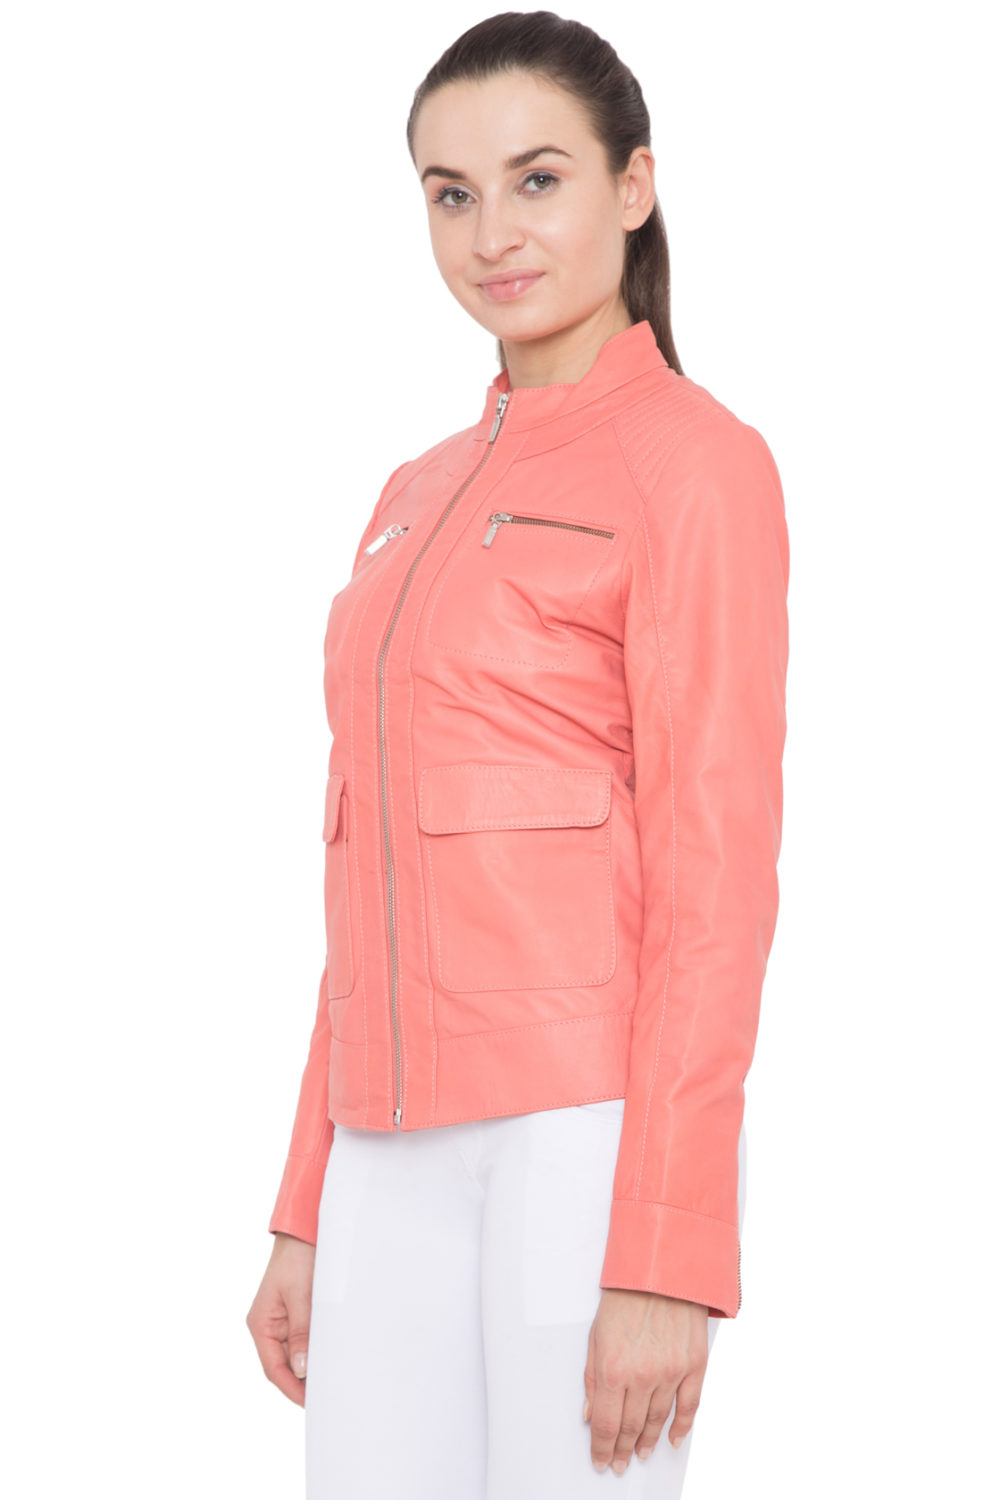 PINK FULL LEATHER JACKET-WOMEN